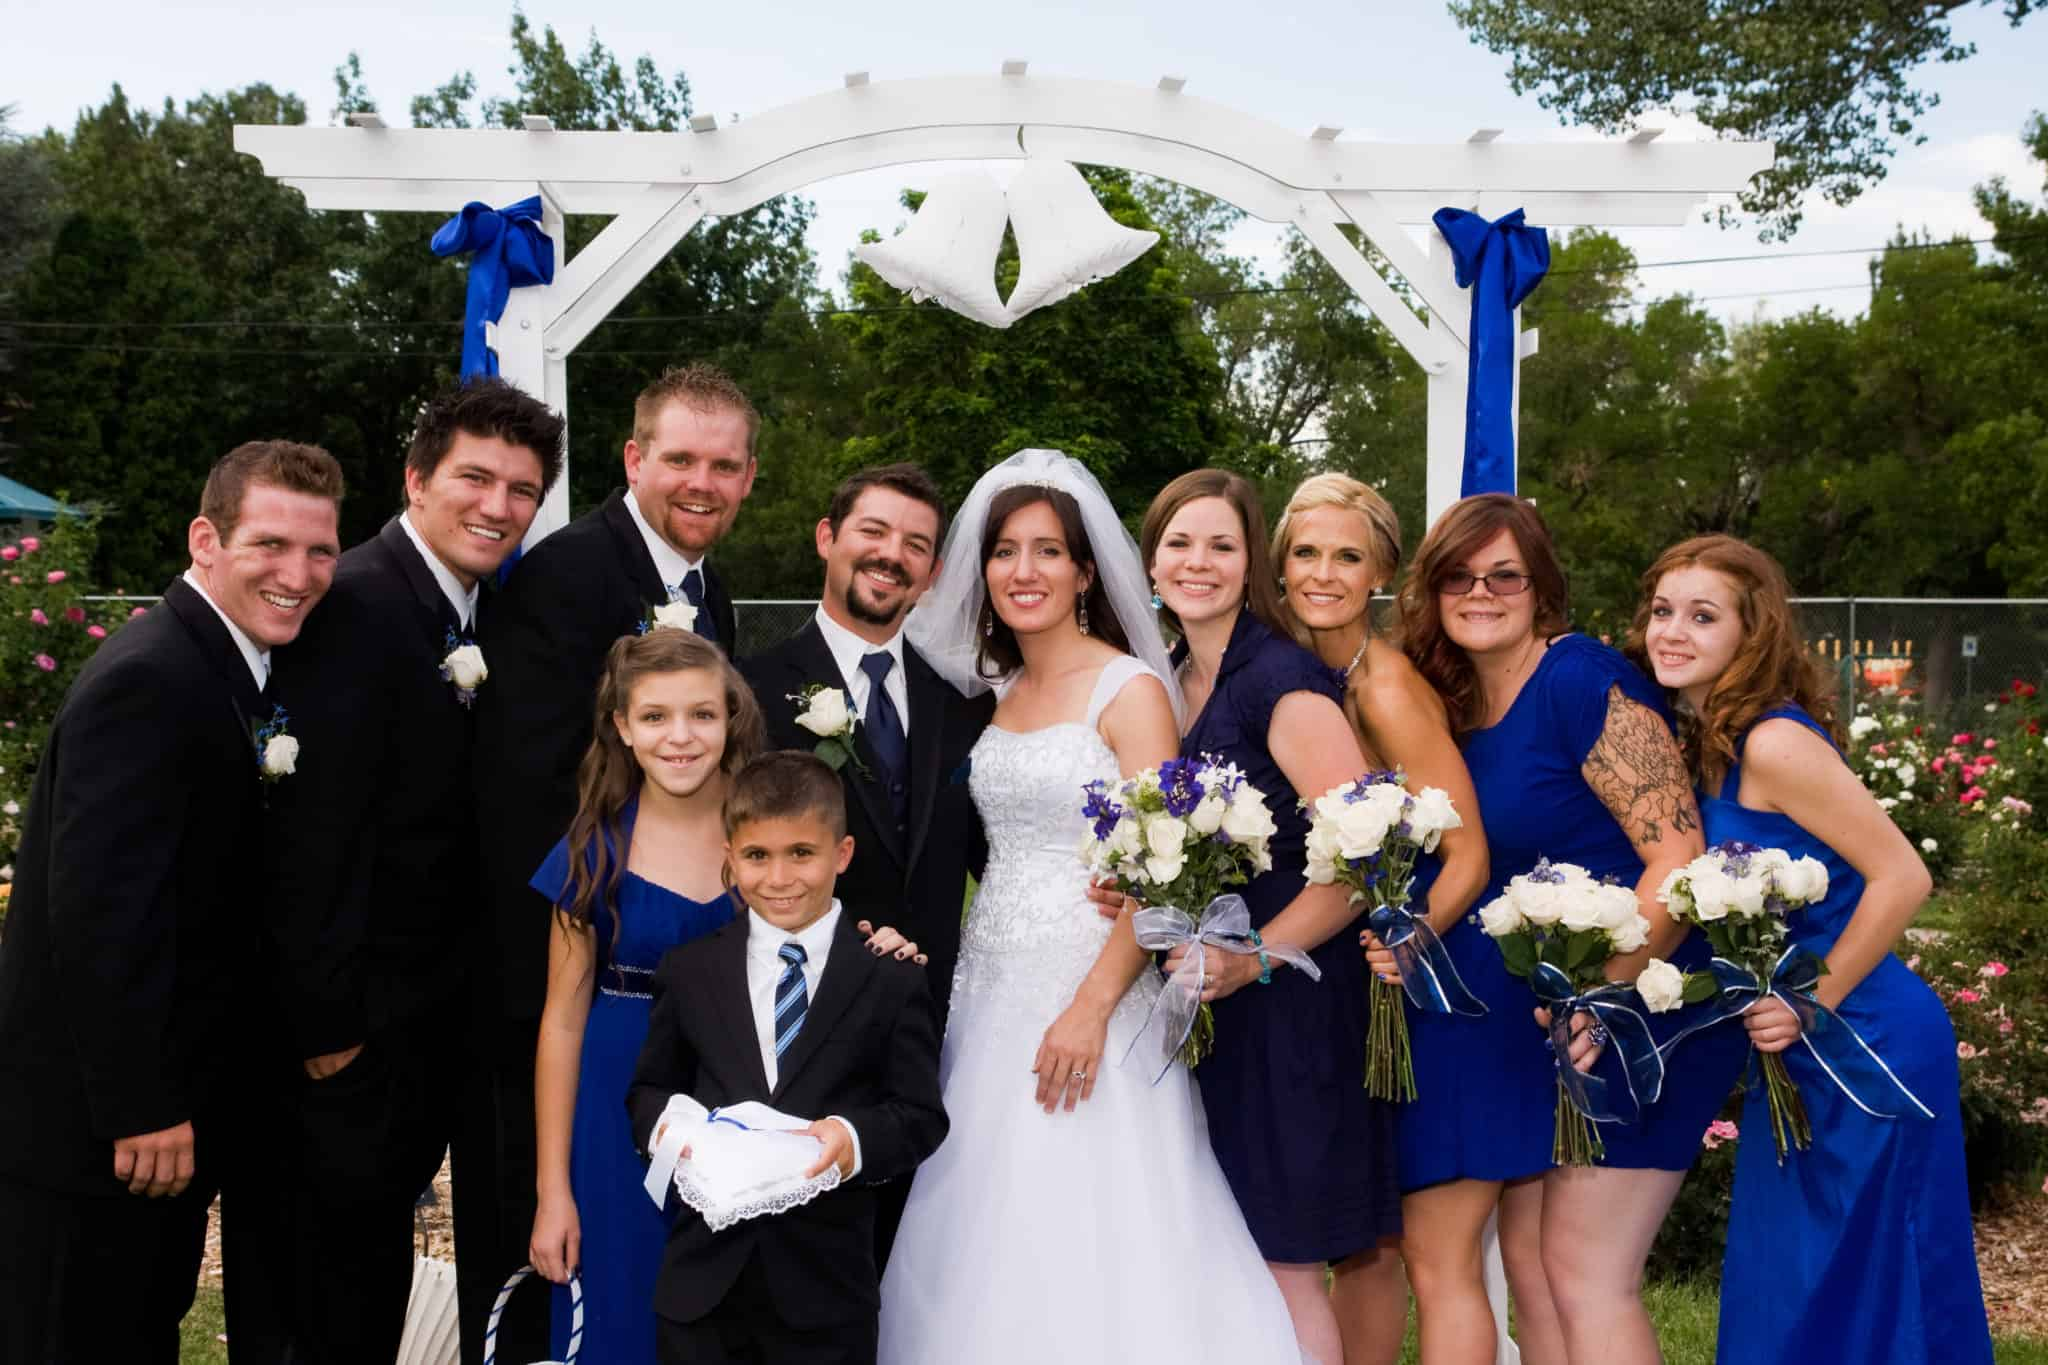 Wedding formals: bridal party